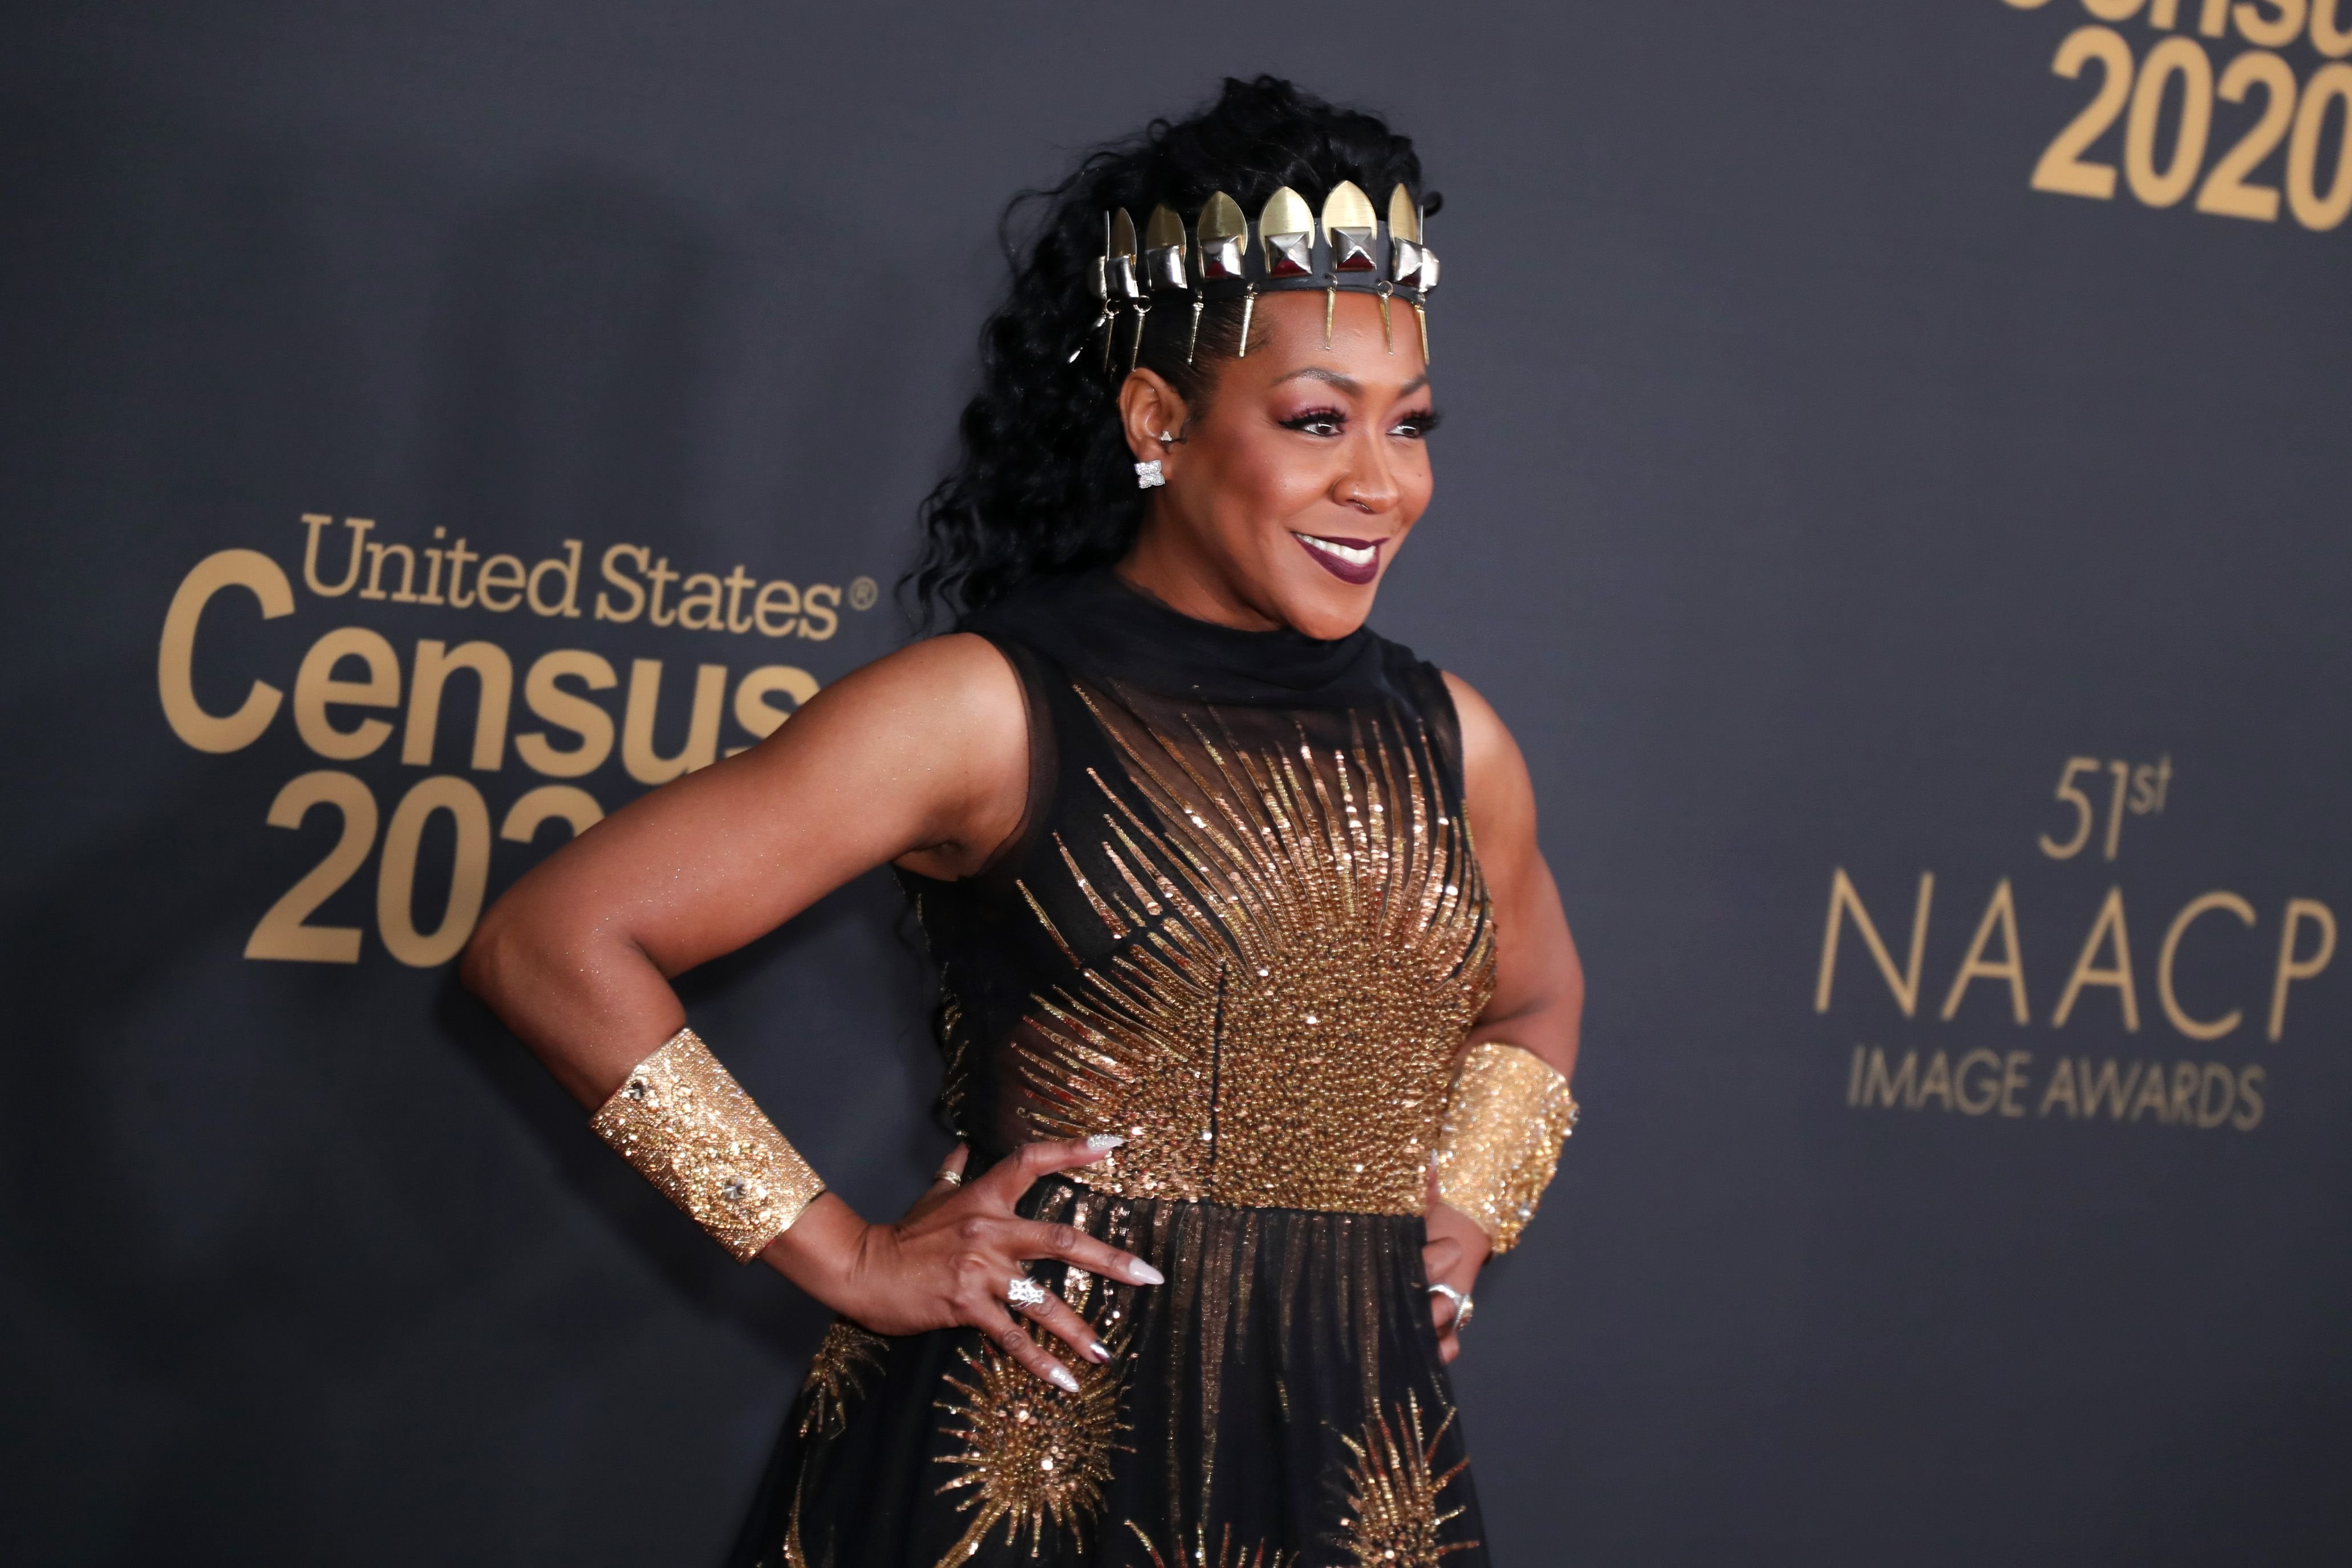 Tichina Arnold at the NAACP Image Awards on February 22, 2020 in Pasadena. | Photo: Getty Images